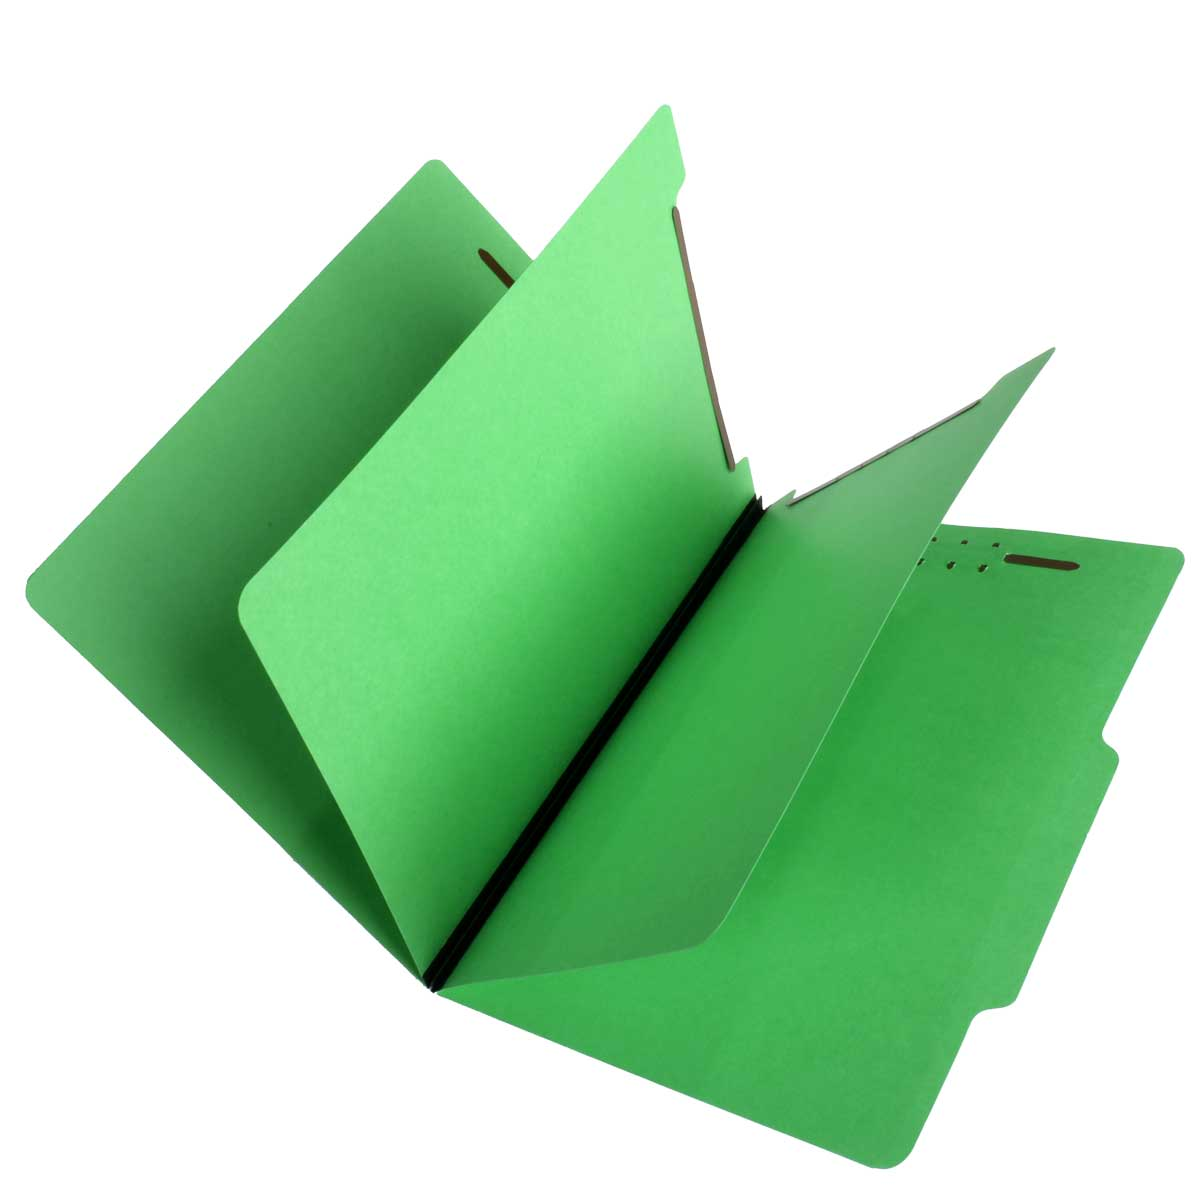 S-59704 - SJ Paper S59704 Match 15 Pt. Green Classification Folders, 2/5 Cut ROC Top Tab, Letter Size, 2 Dividers (Box of 25)